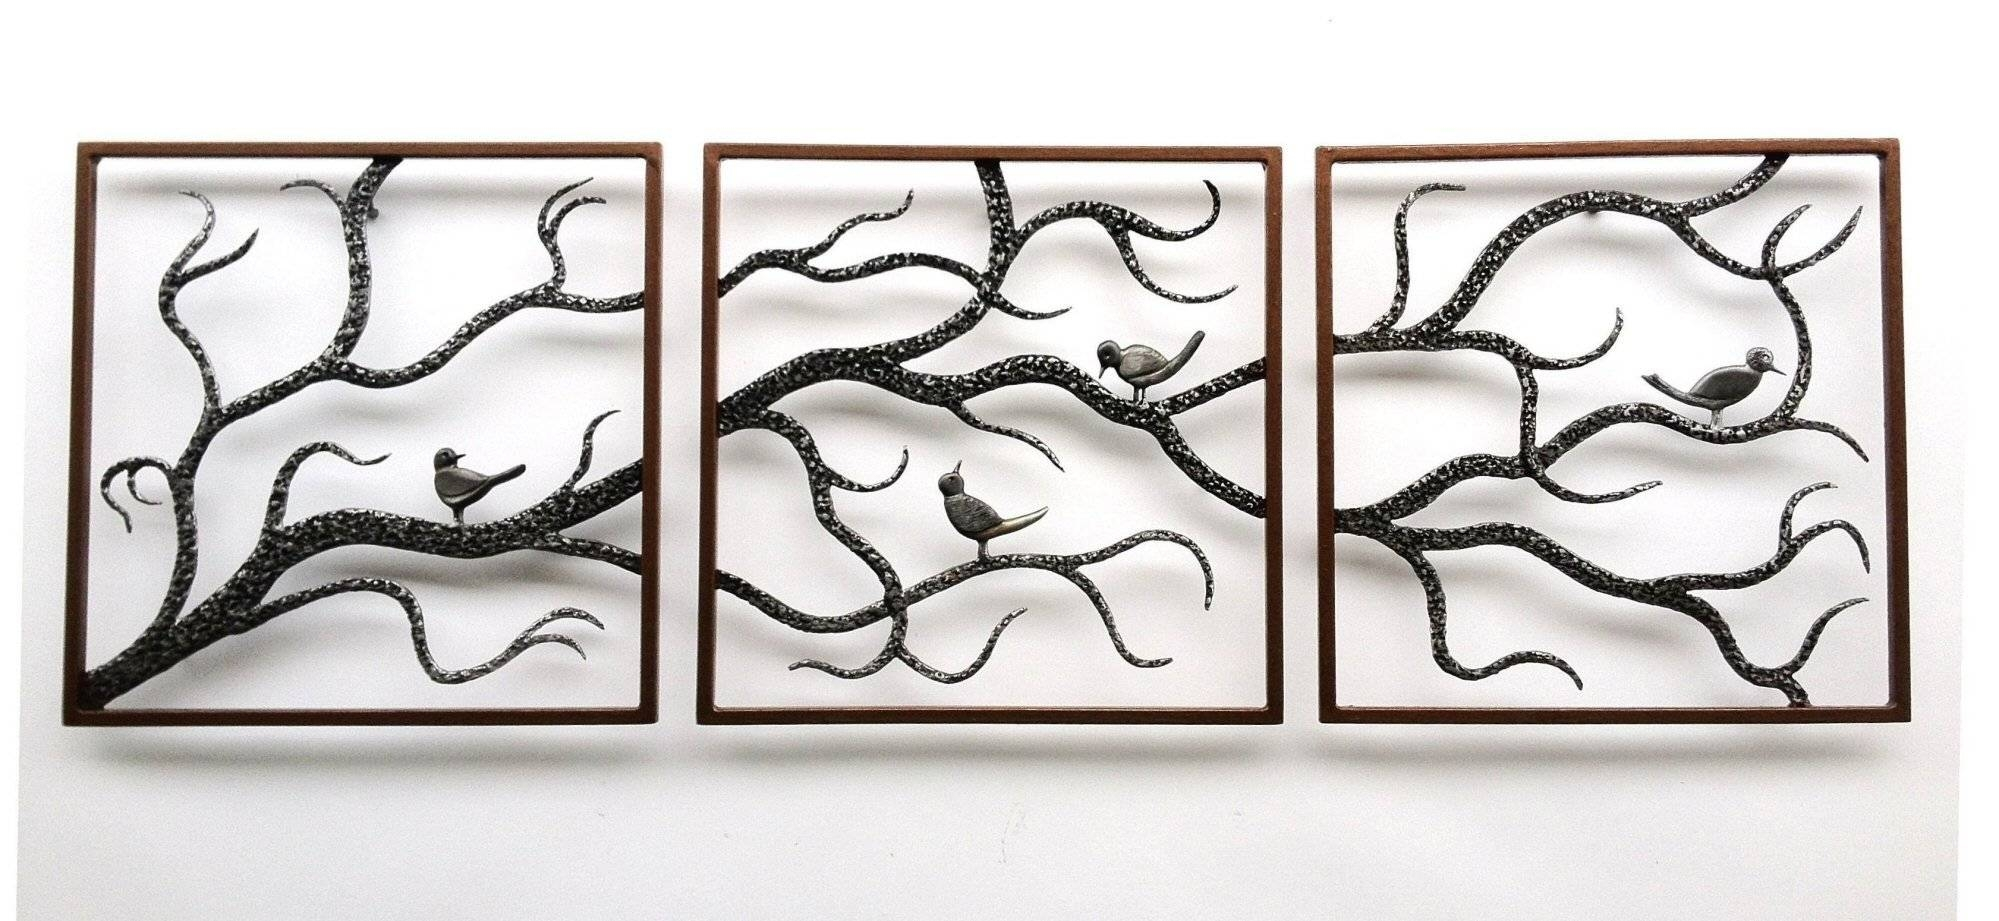 Wall Art Designs: Metal Wall Art Trees Birch Three Framed Cute With Regard To Recent Black Metal Wall Art Decor (View 7 of 20)